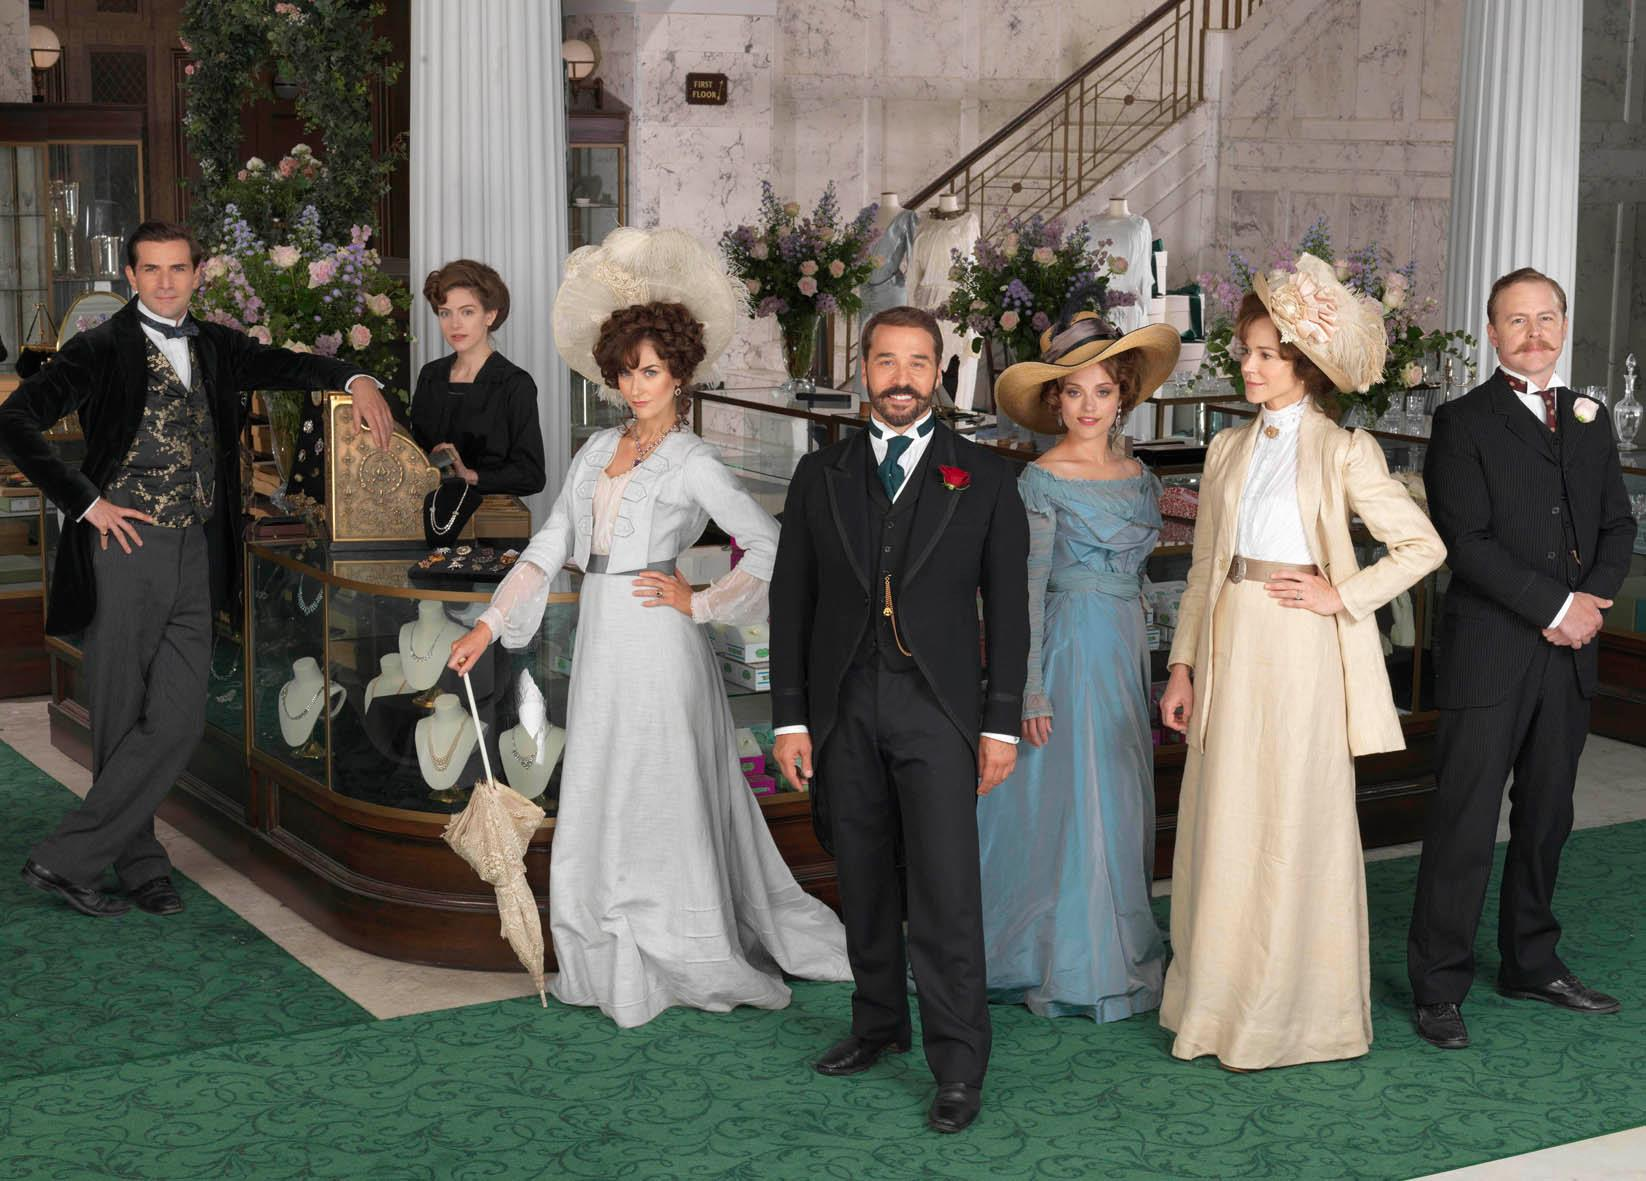 mr_selfridge.jpg